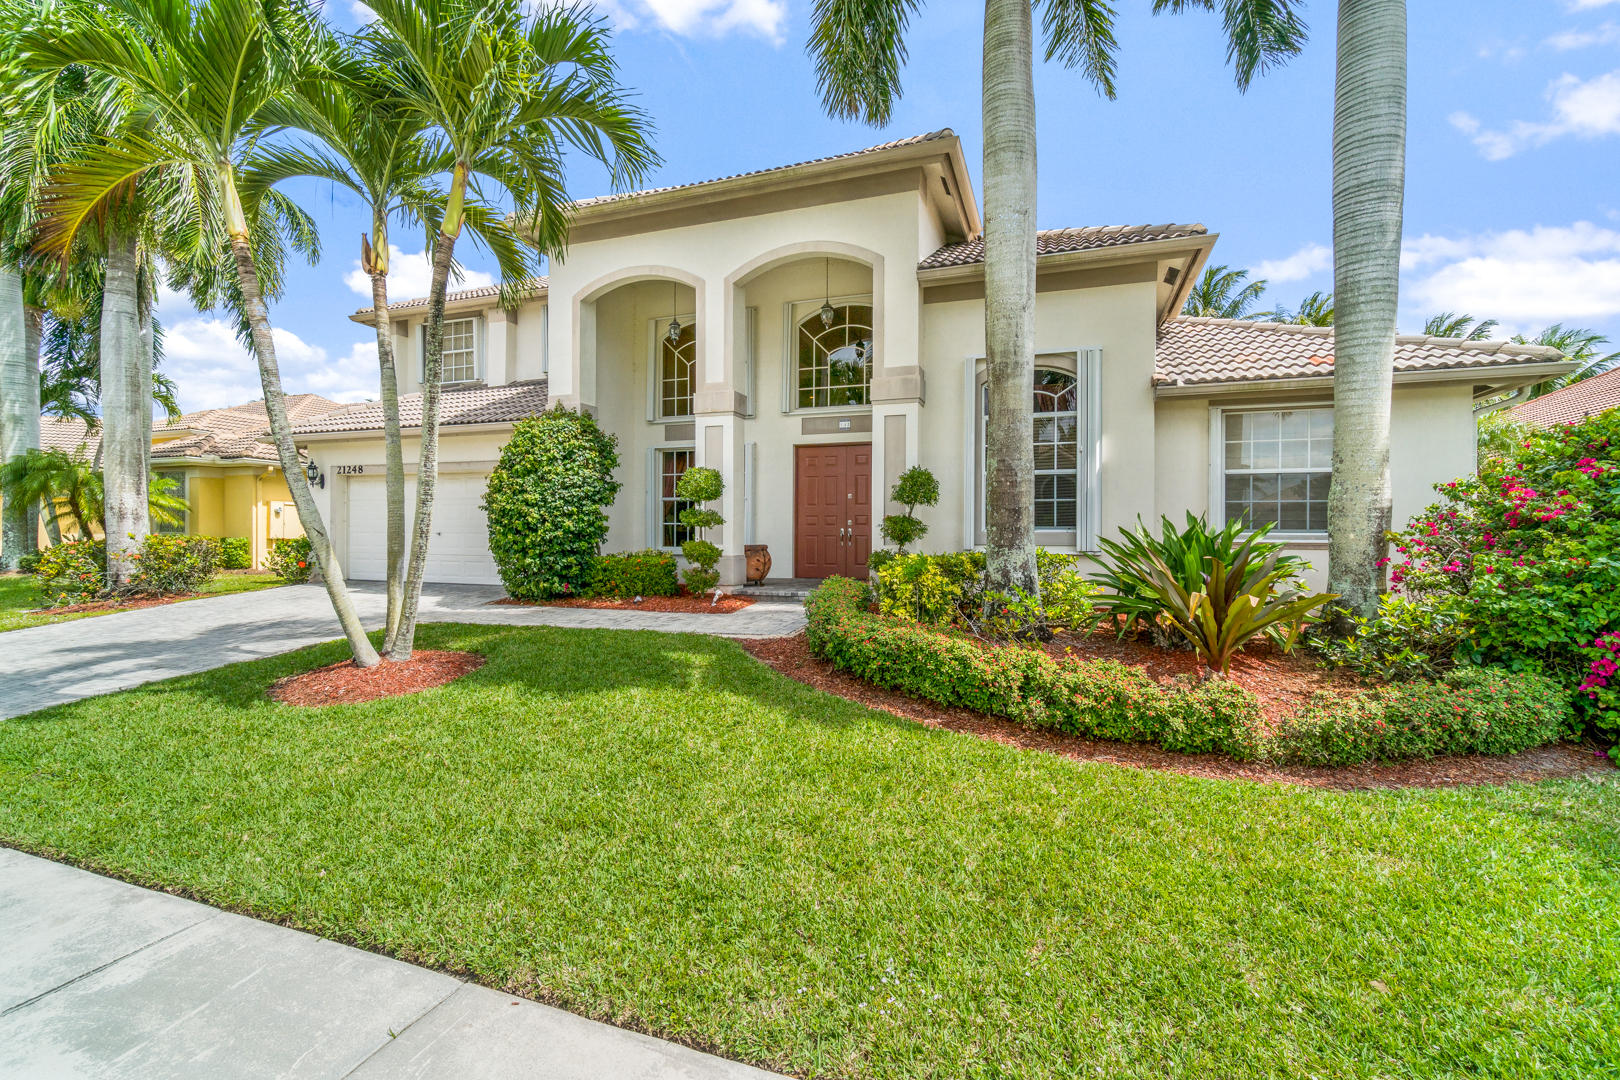 Home for sale in Boca Falls The Estates Boca Raton Florida